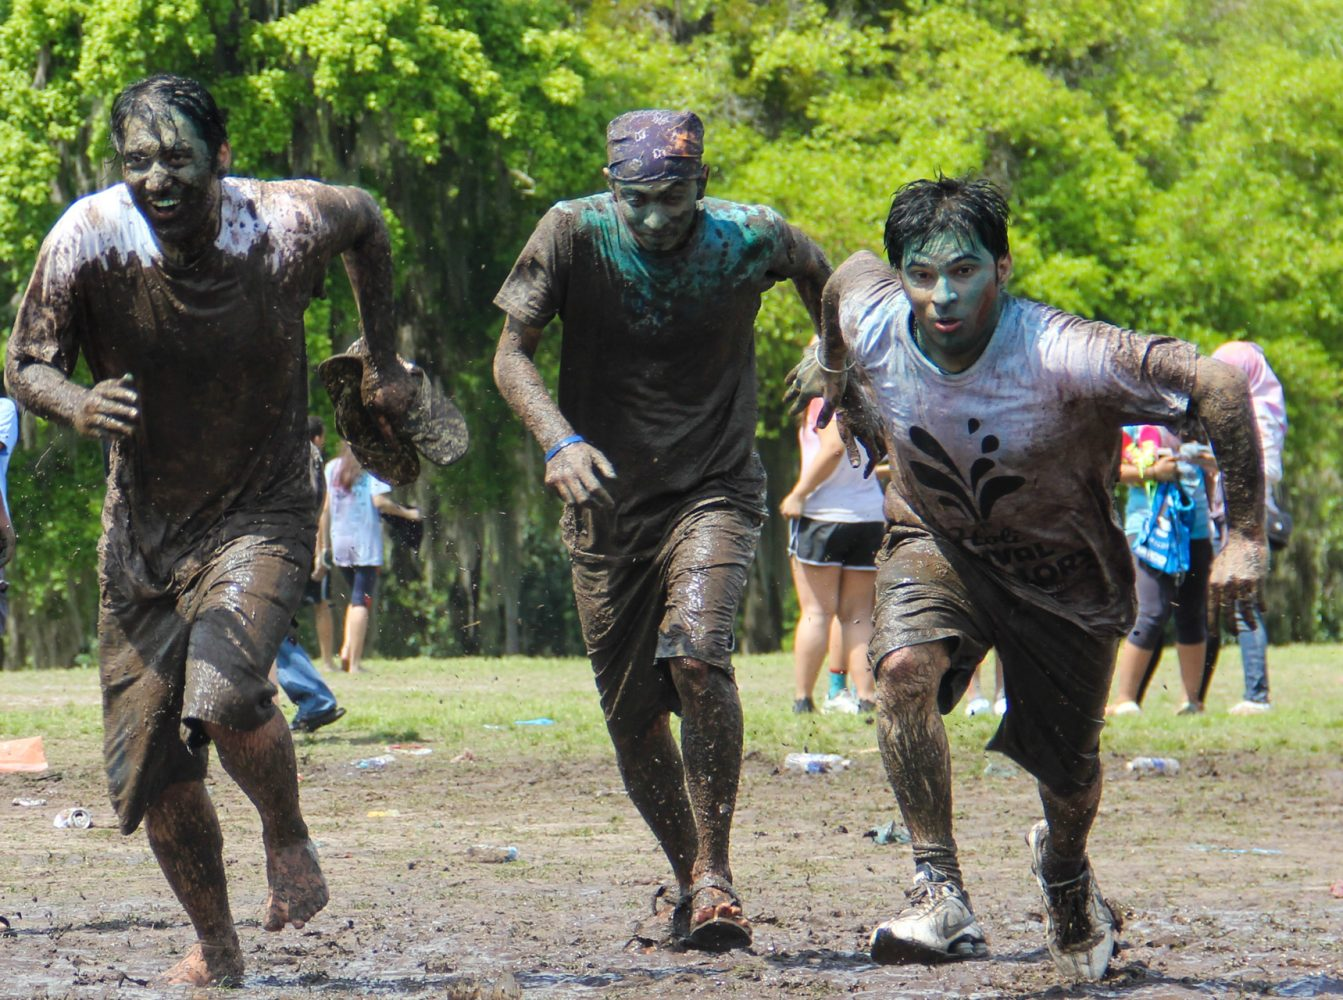 A group of friends dive into the mud at the culmination of the Holi festival.